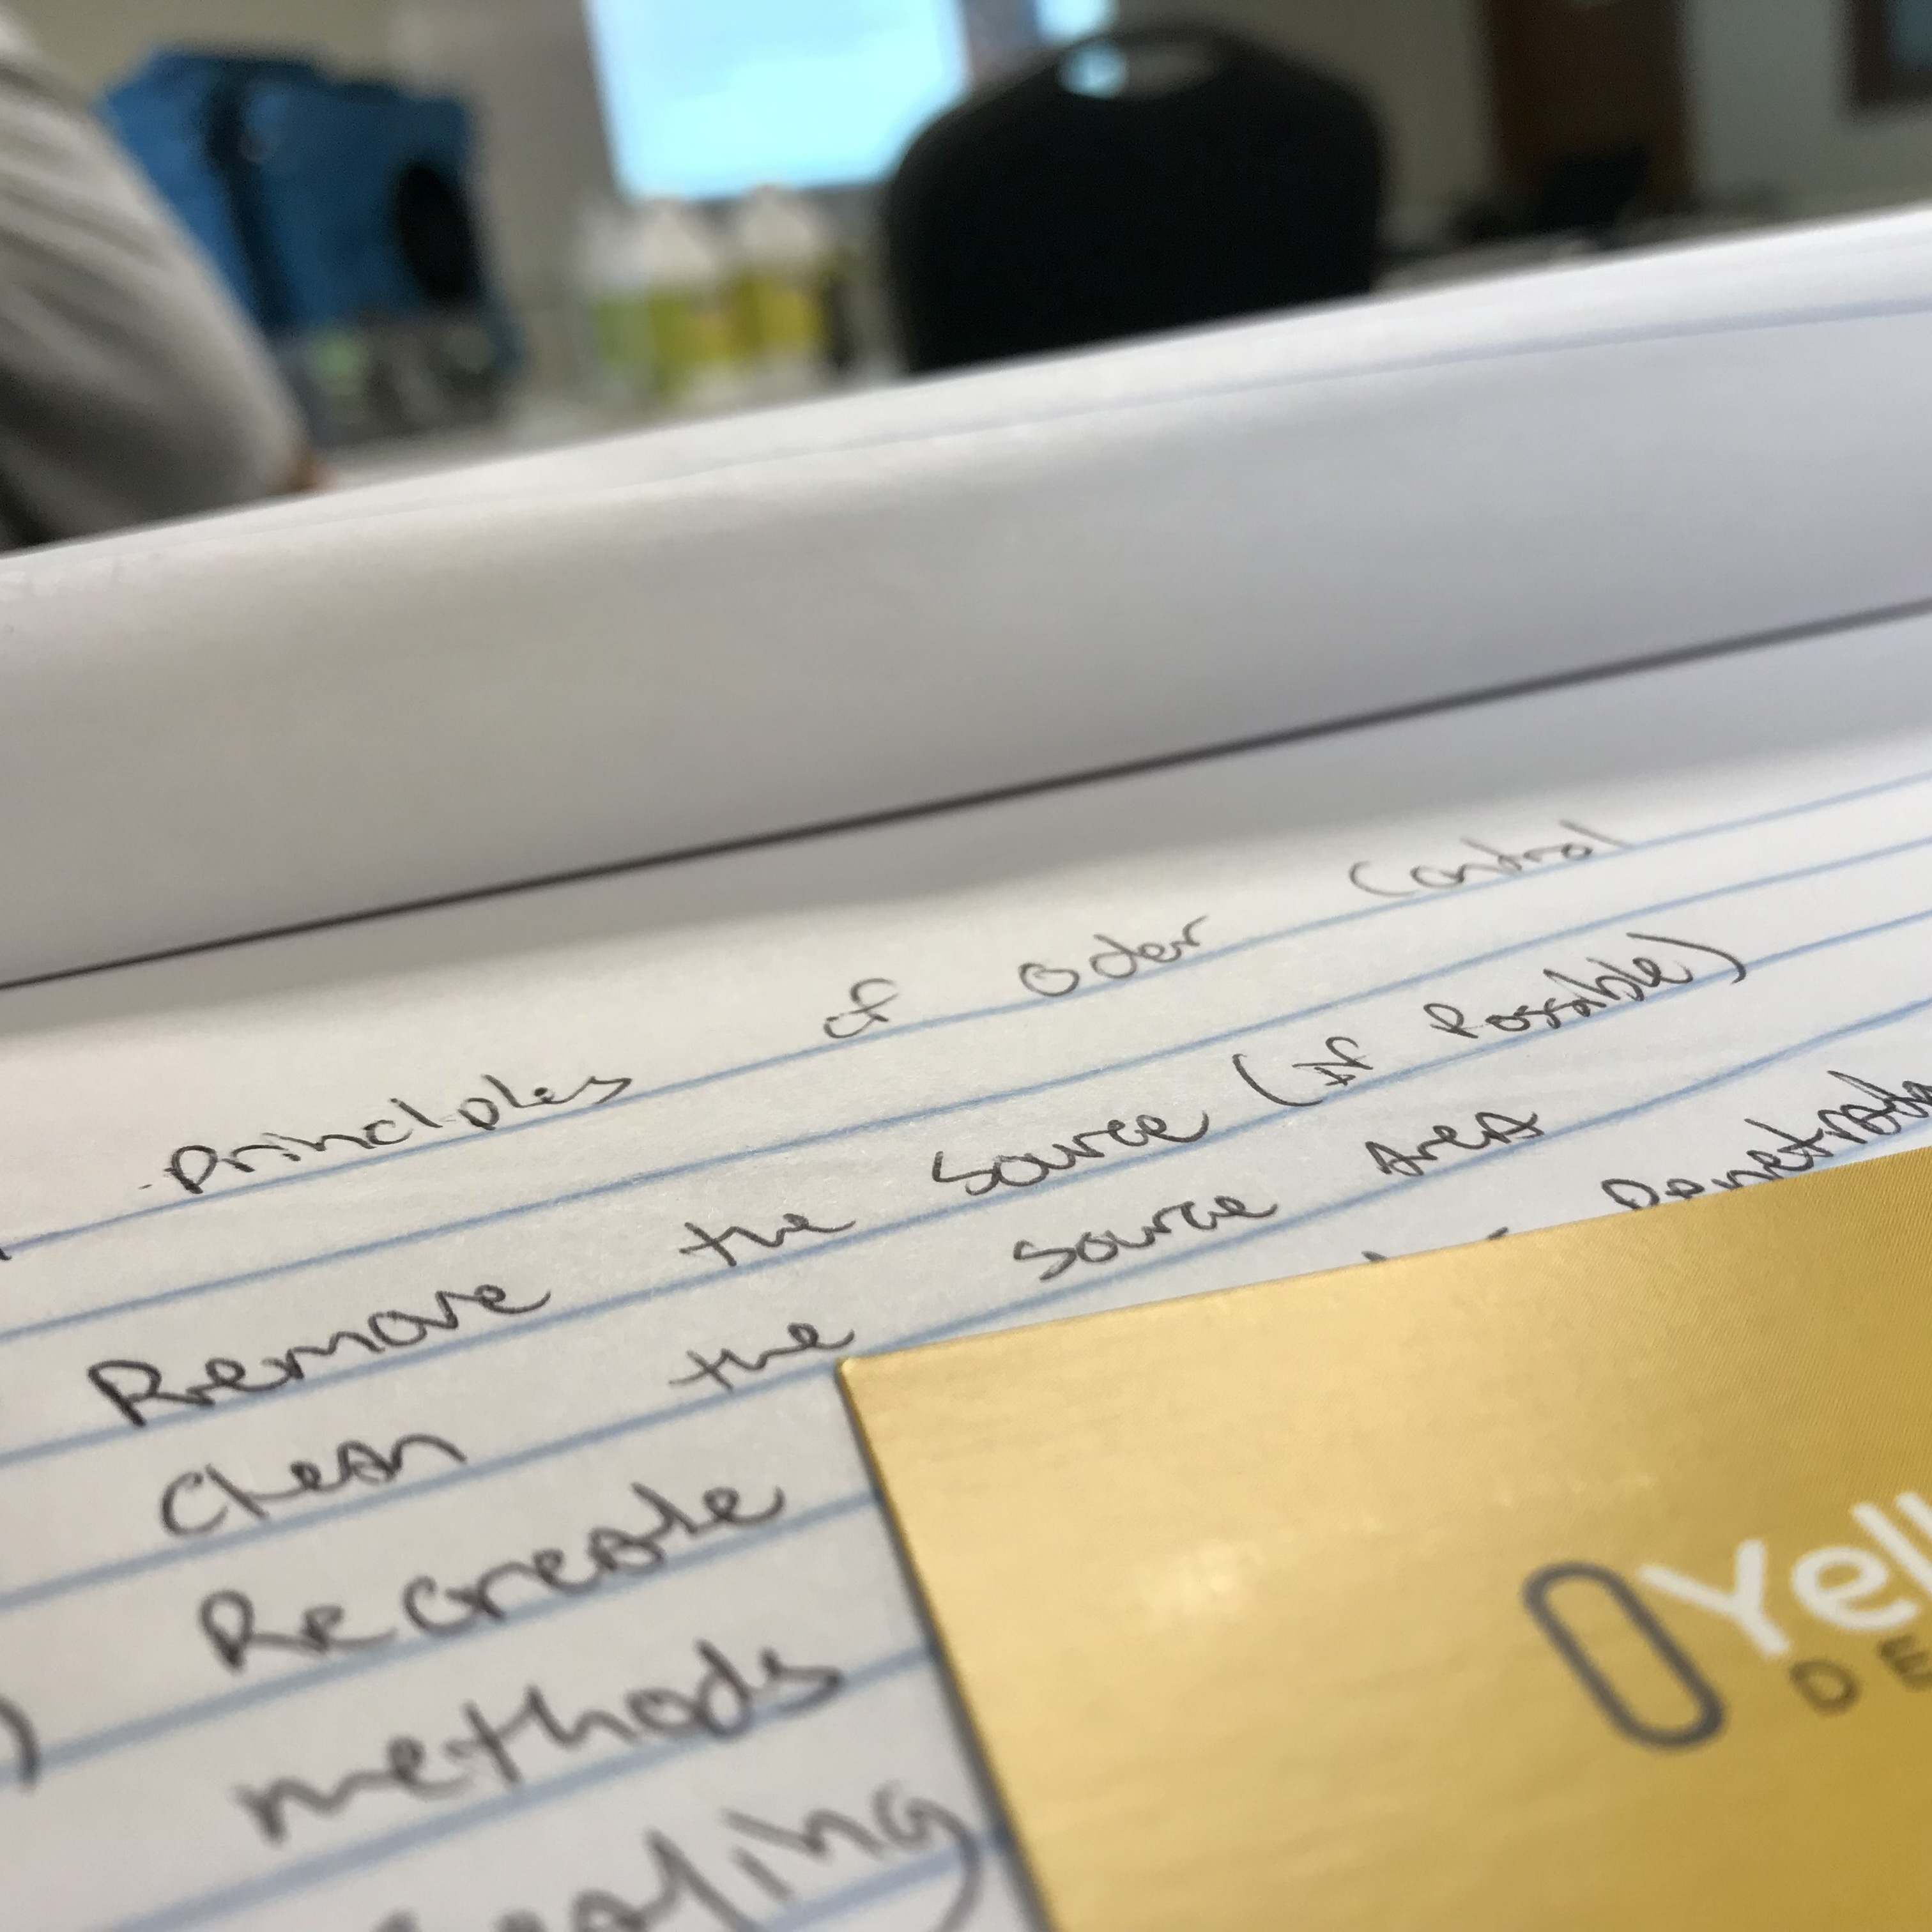 A note pad including the principles of odor control with Yellow Kord business card